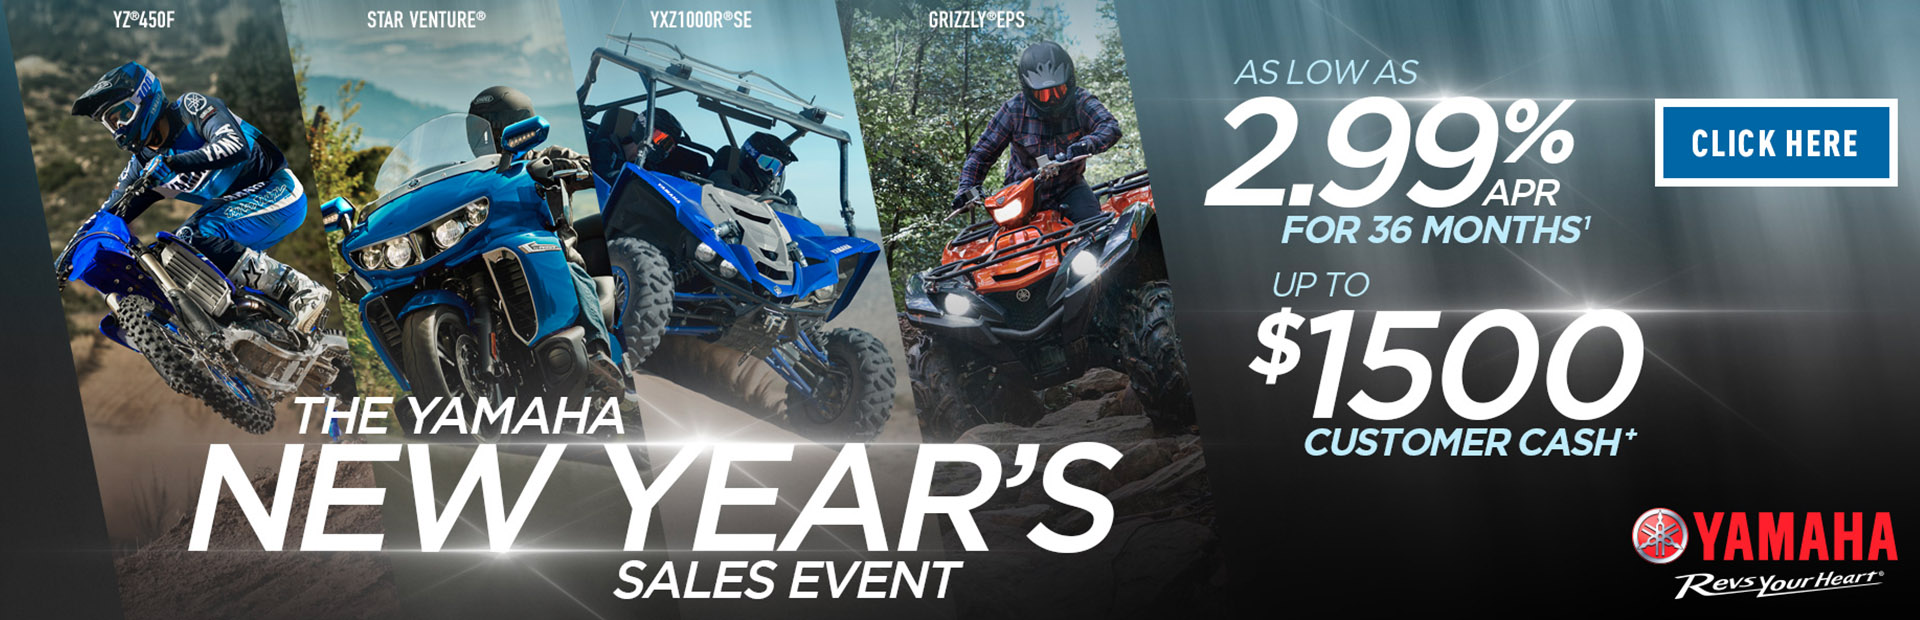 The Yamaha New Year's Sales Event